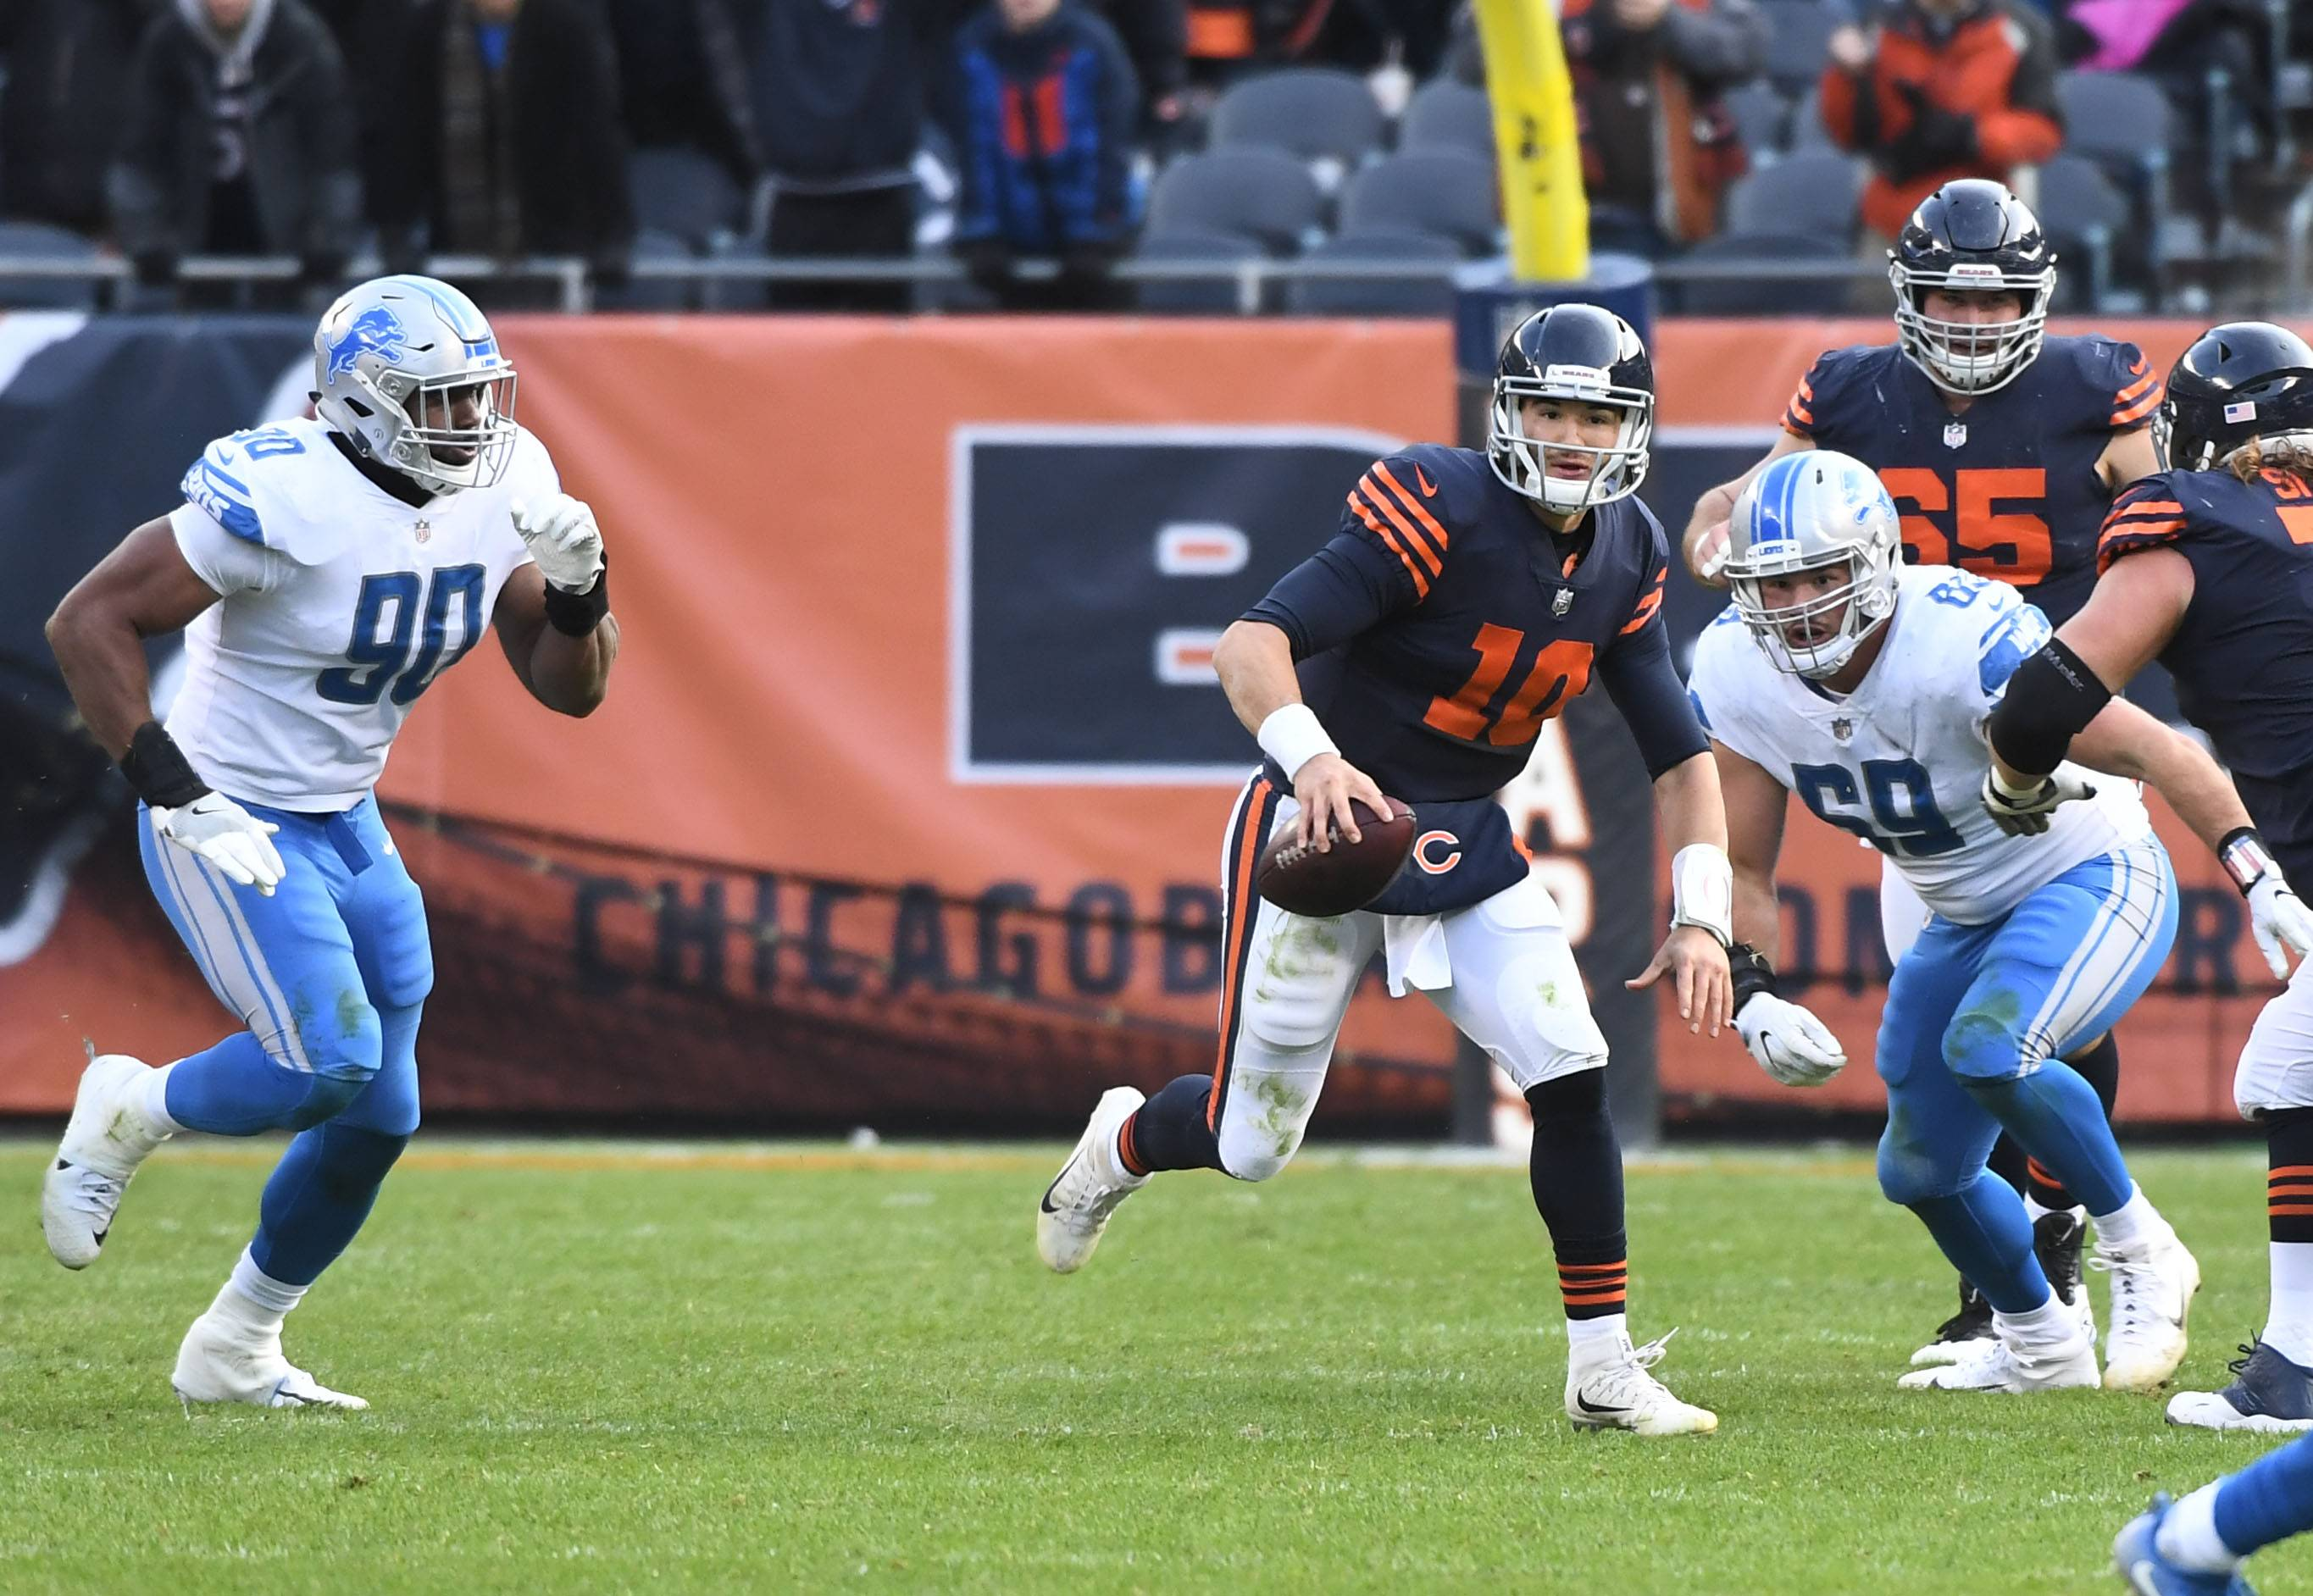 Chicago Bears quarterback Mitchell Trubisky scrambles for a first down late in last Sunday's game against the Detroit Lions at Soldier Field.